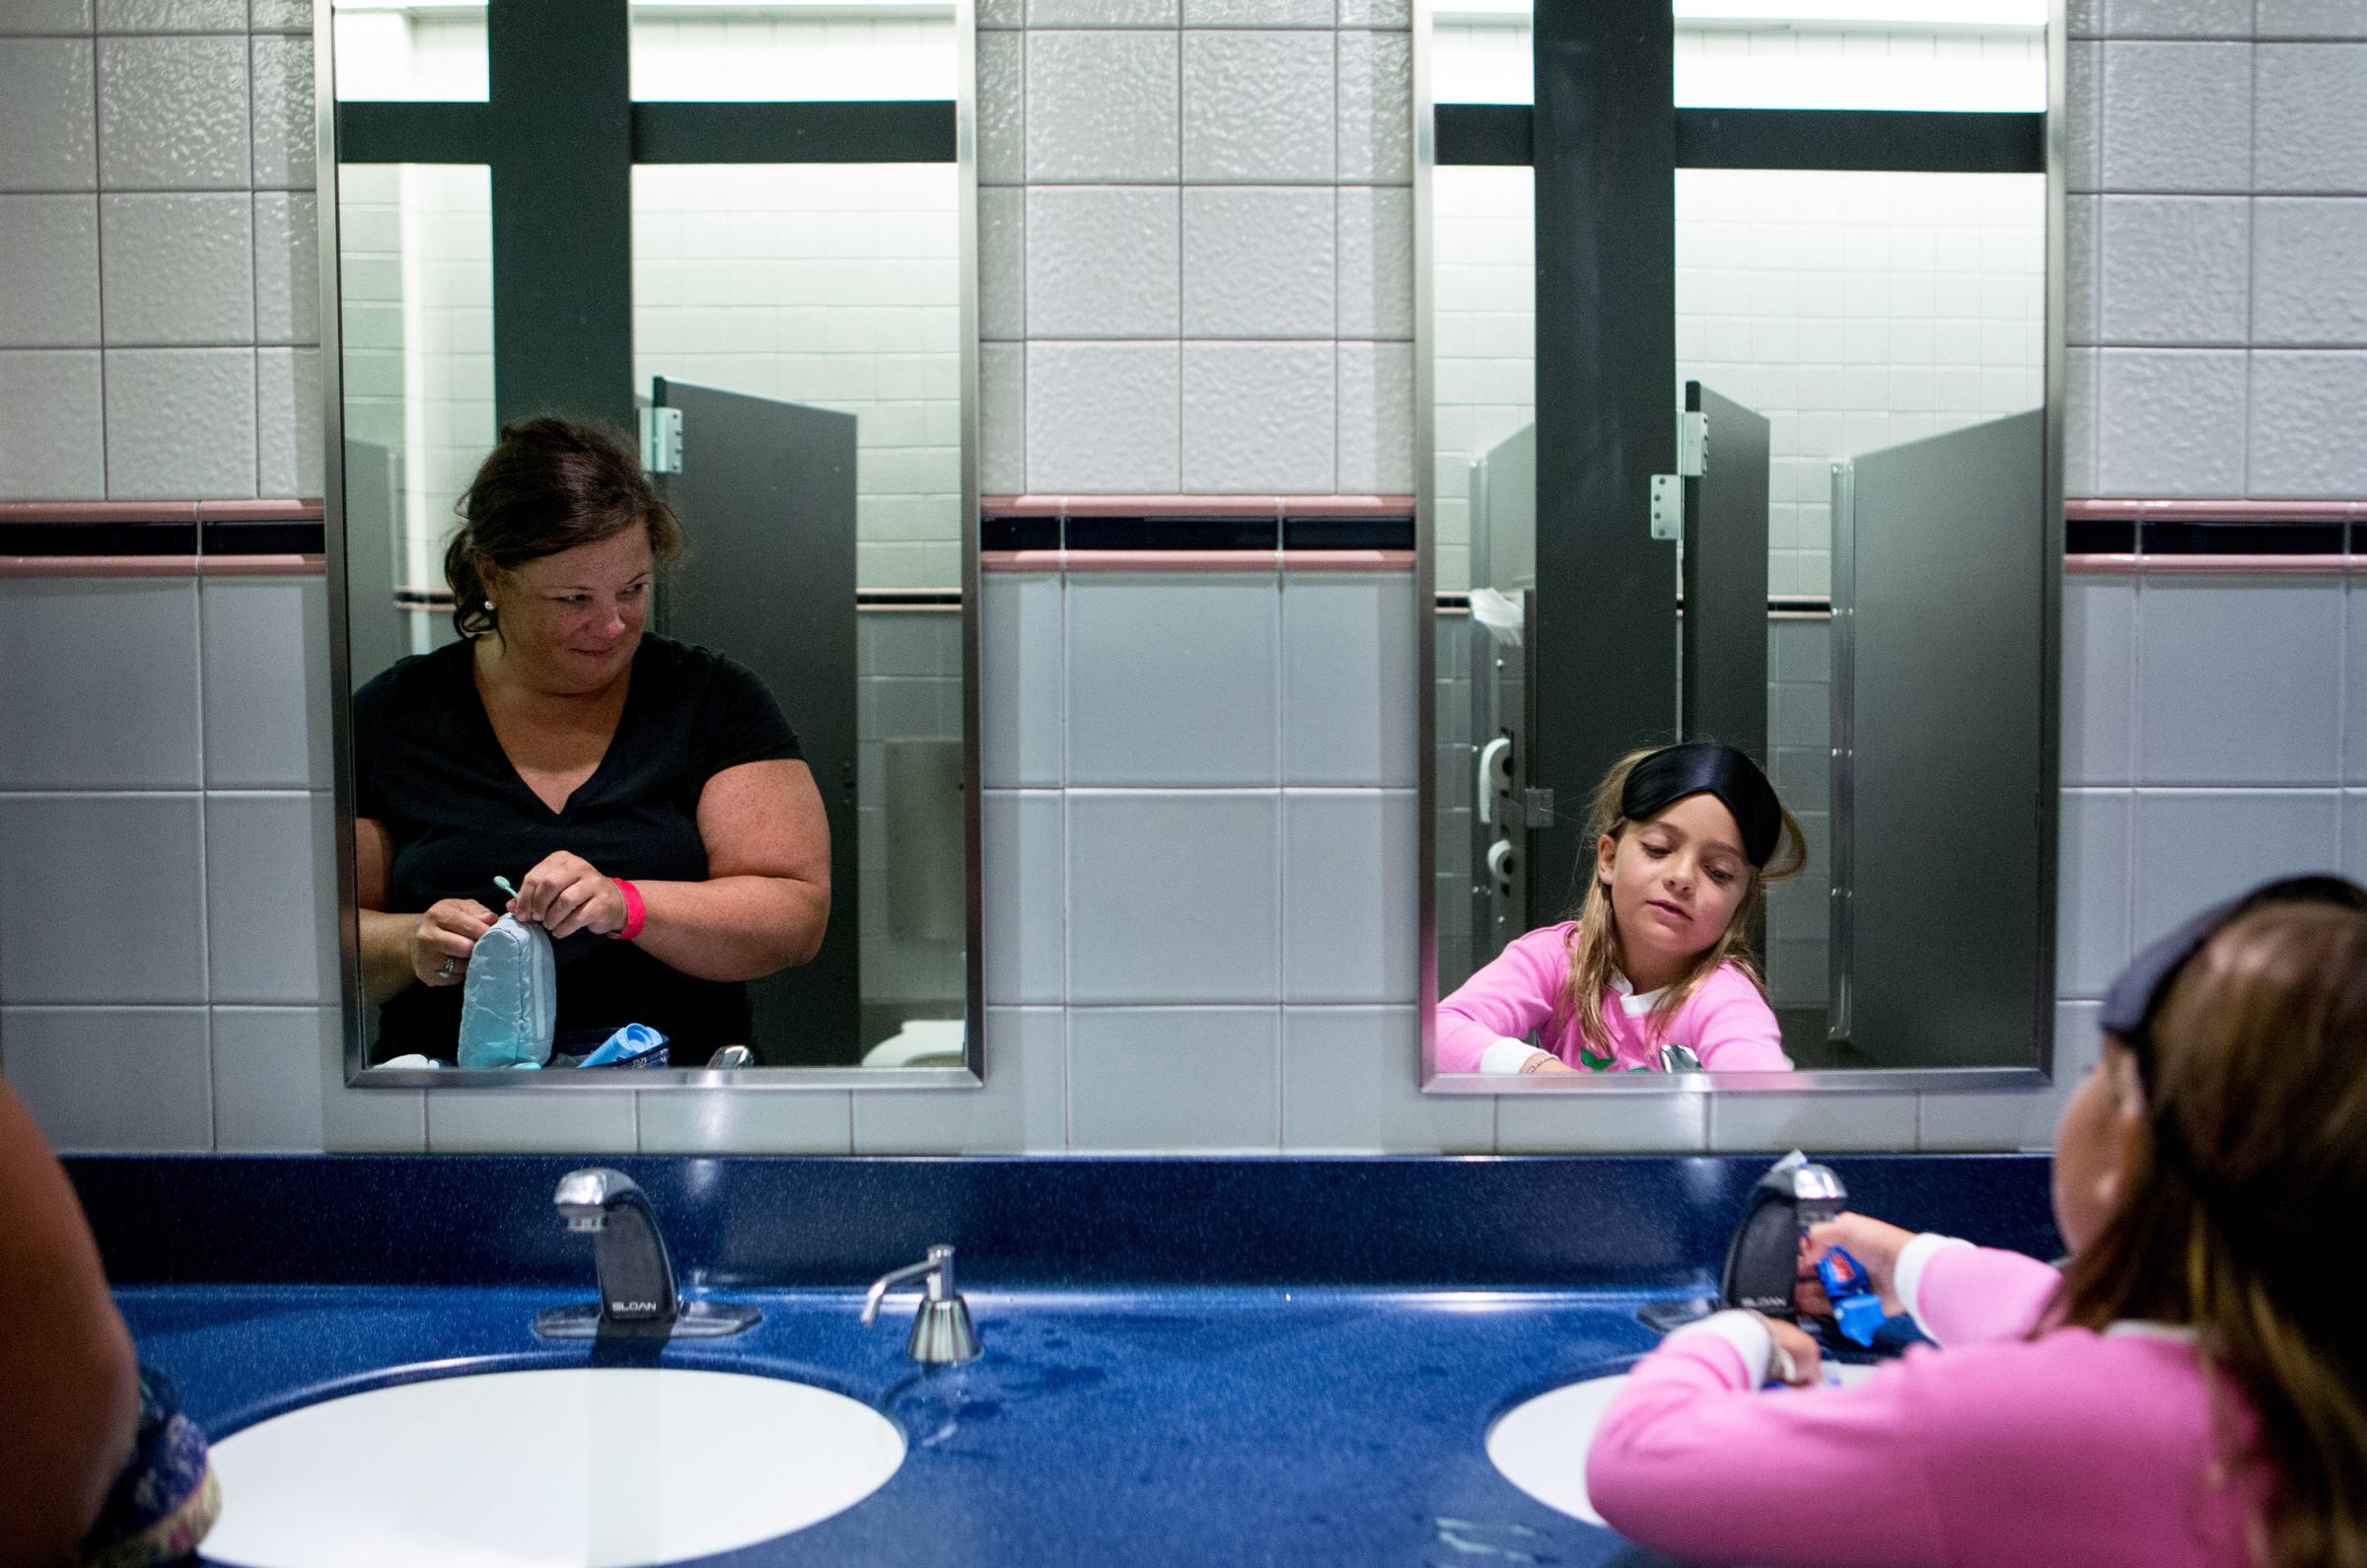 Crony039s daughter bathroom before school the 8